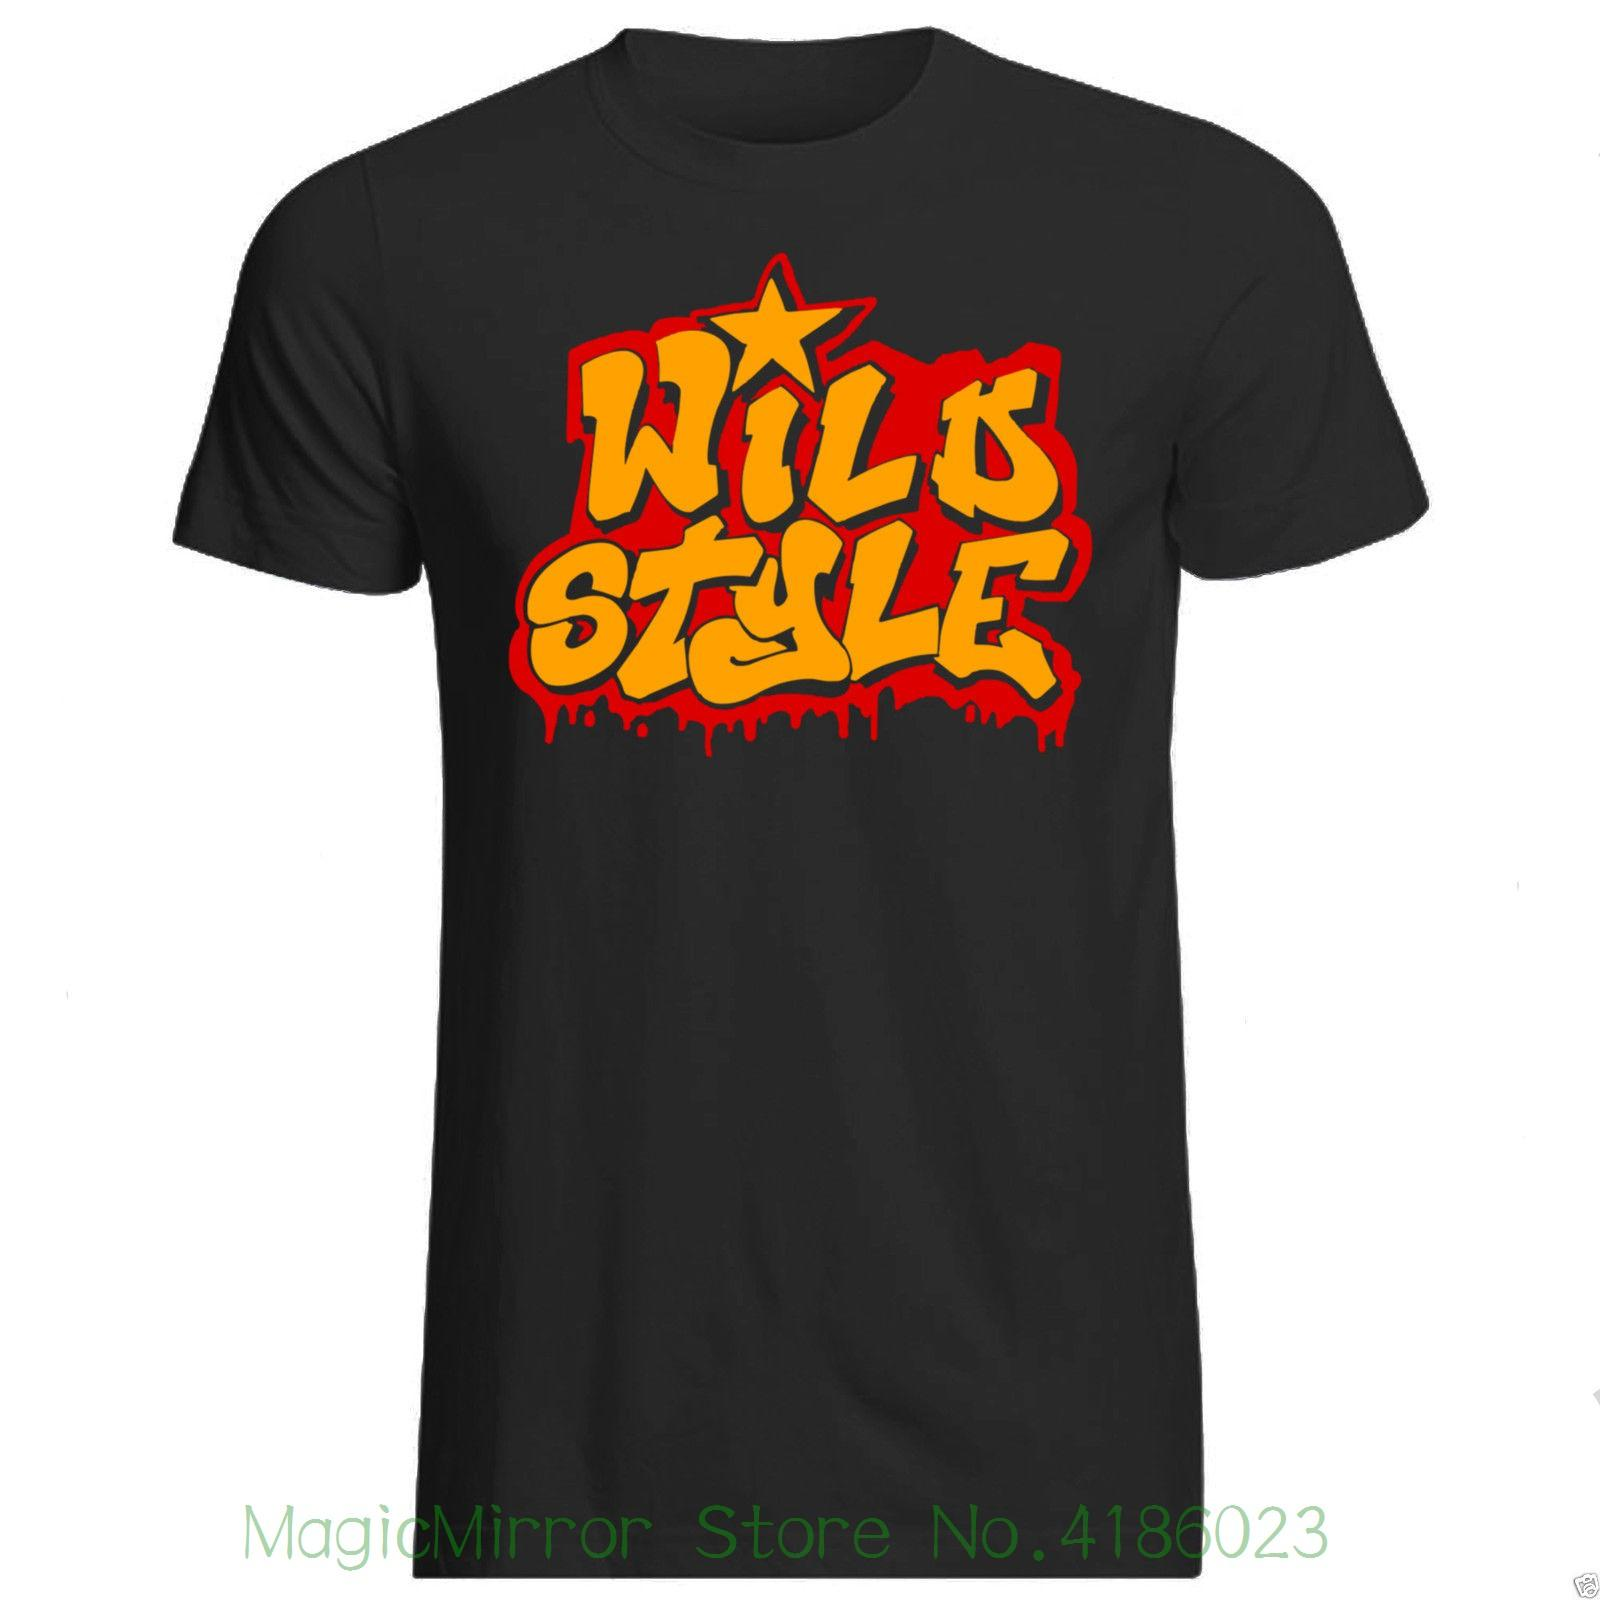 Wild style t shirt various sizes col brand graffiti art tag bombing summer 2018 100 cotton